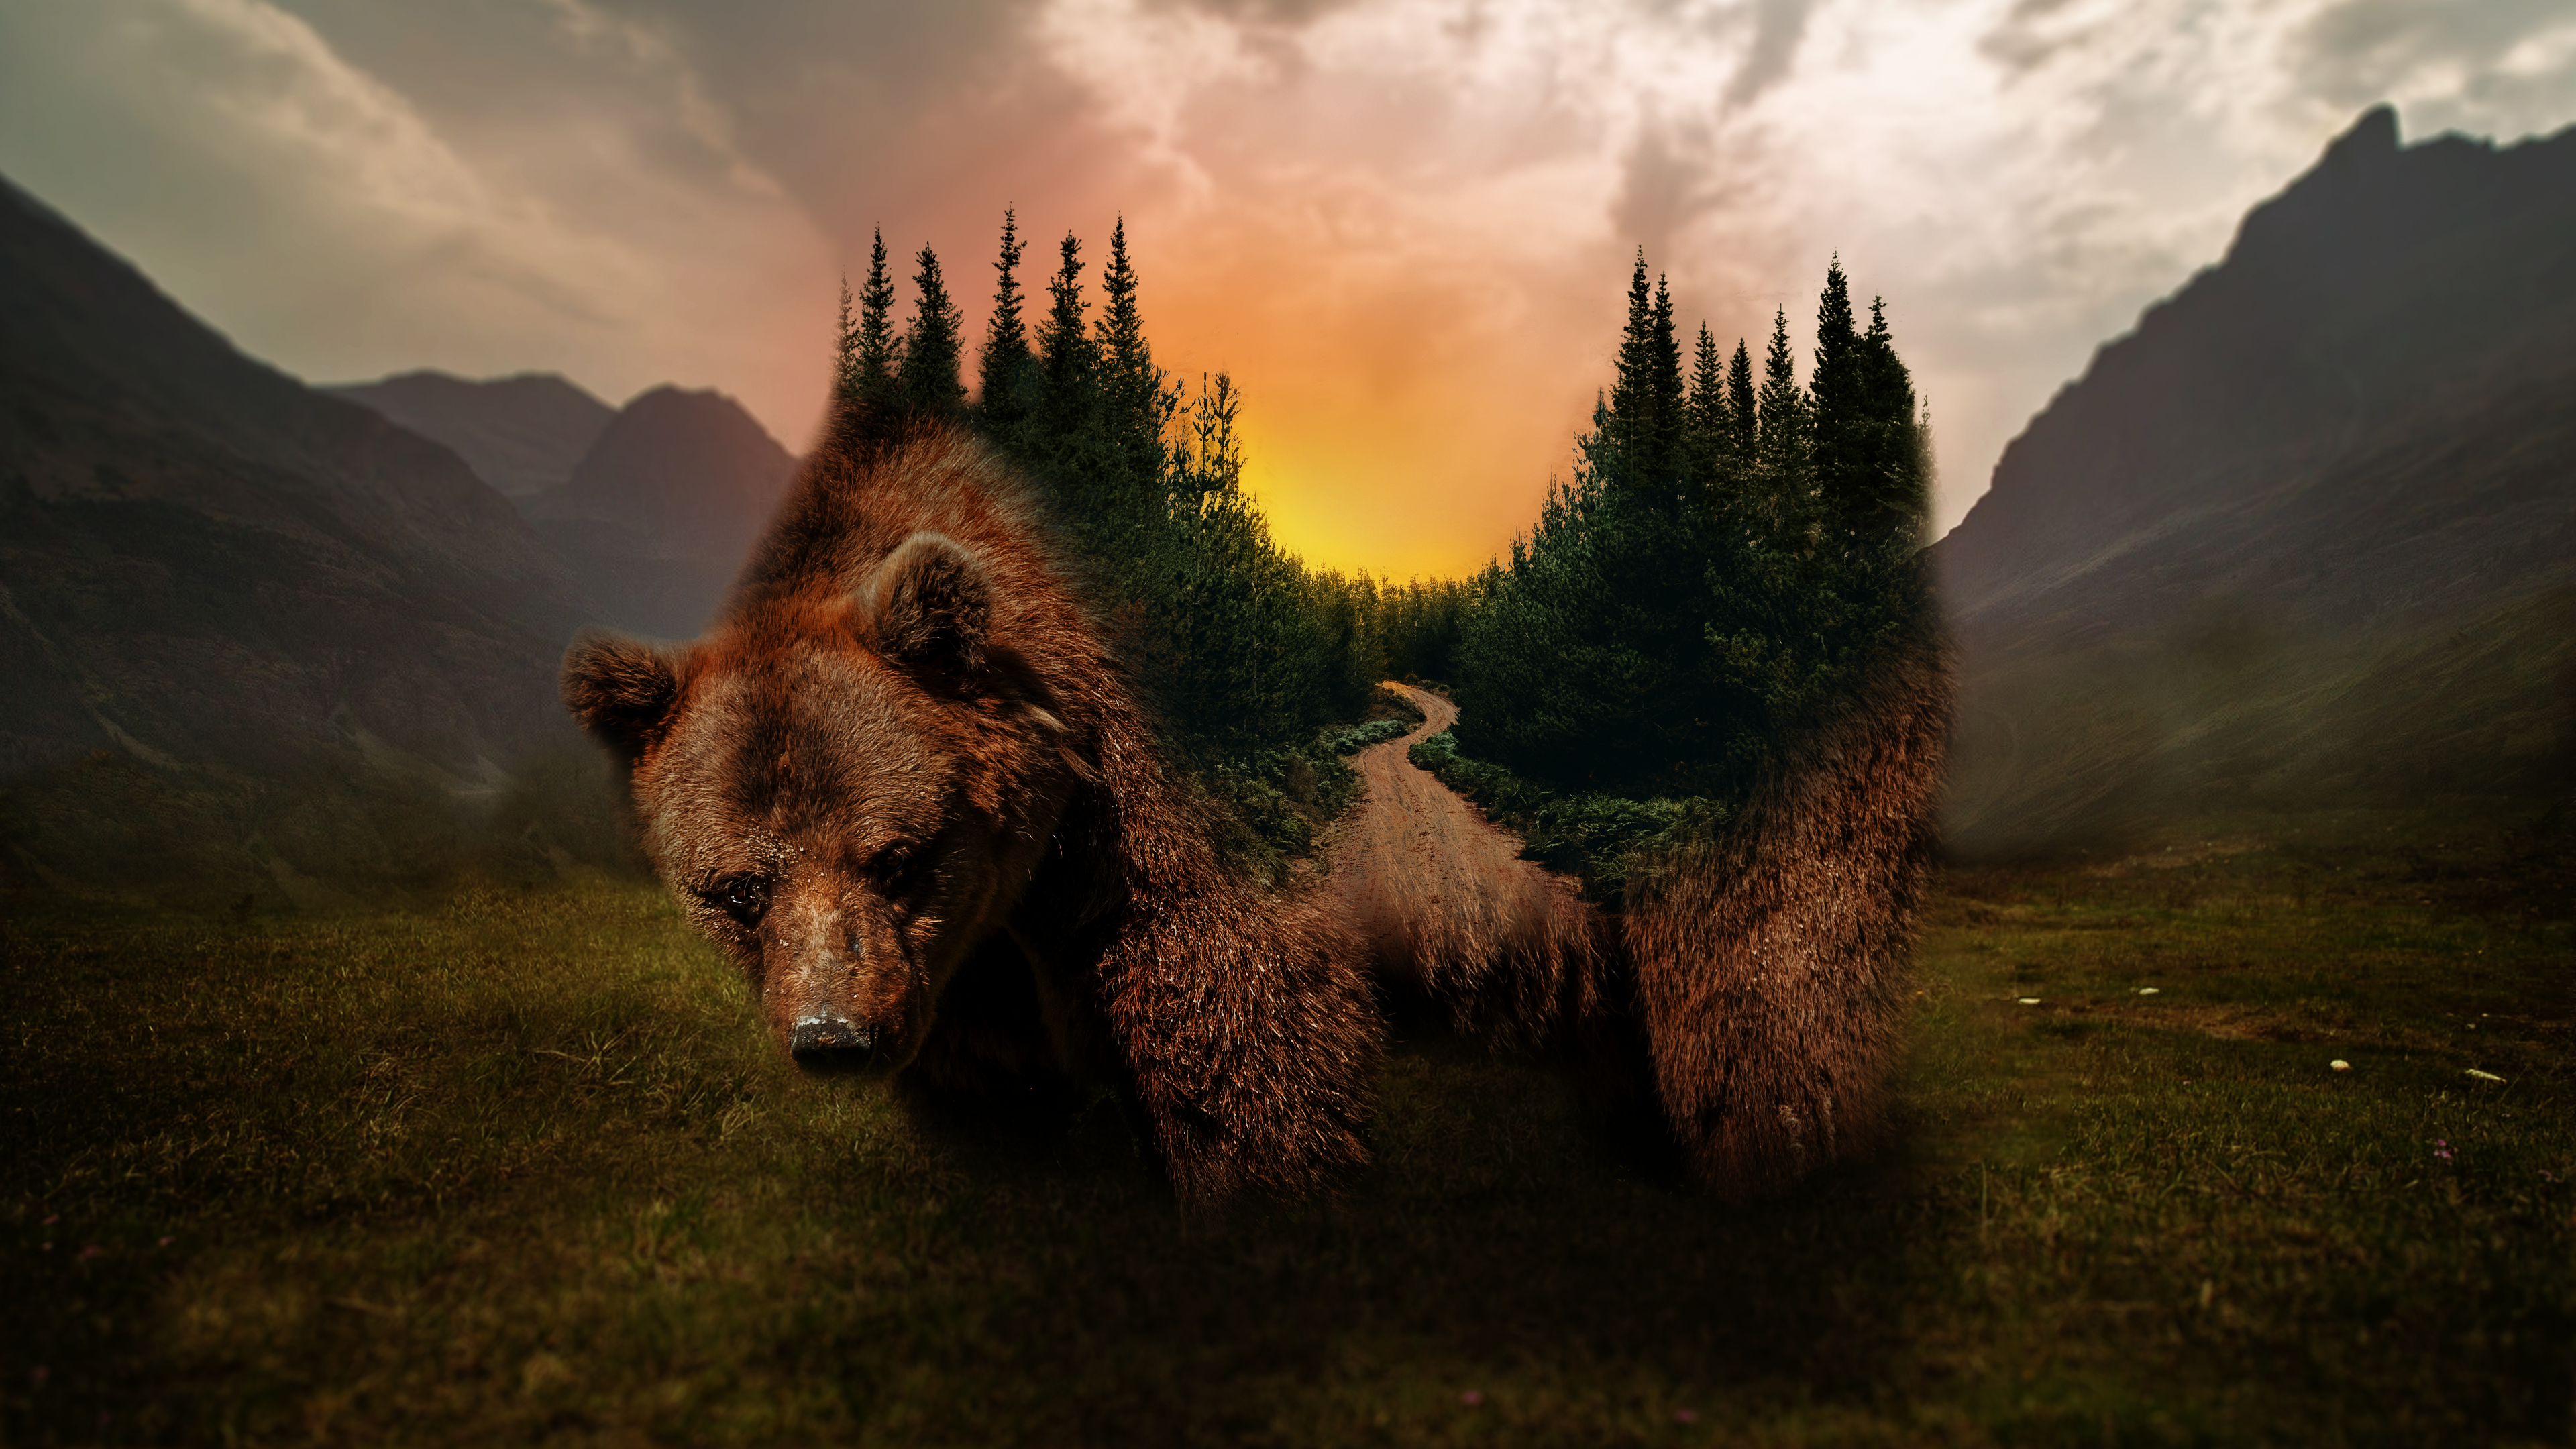 General 3840x2160 Grizzly bear forest sunset nature digital art